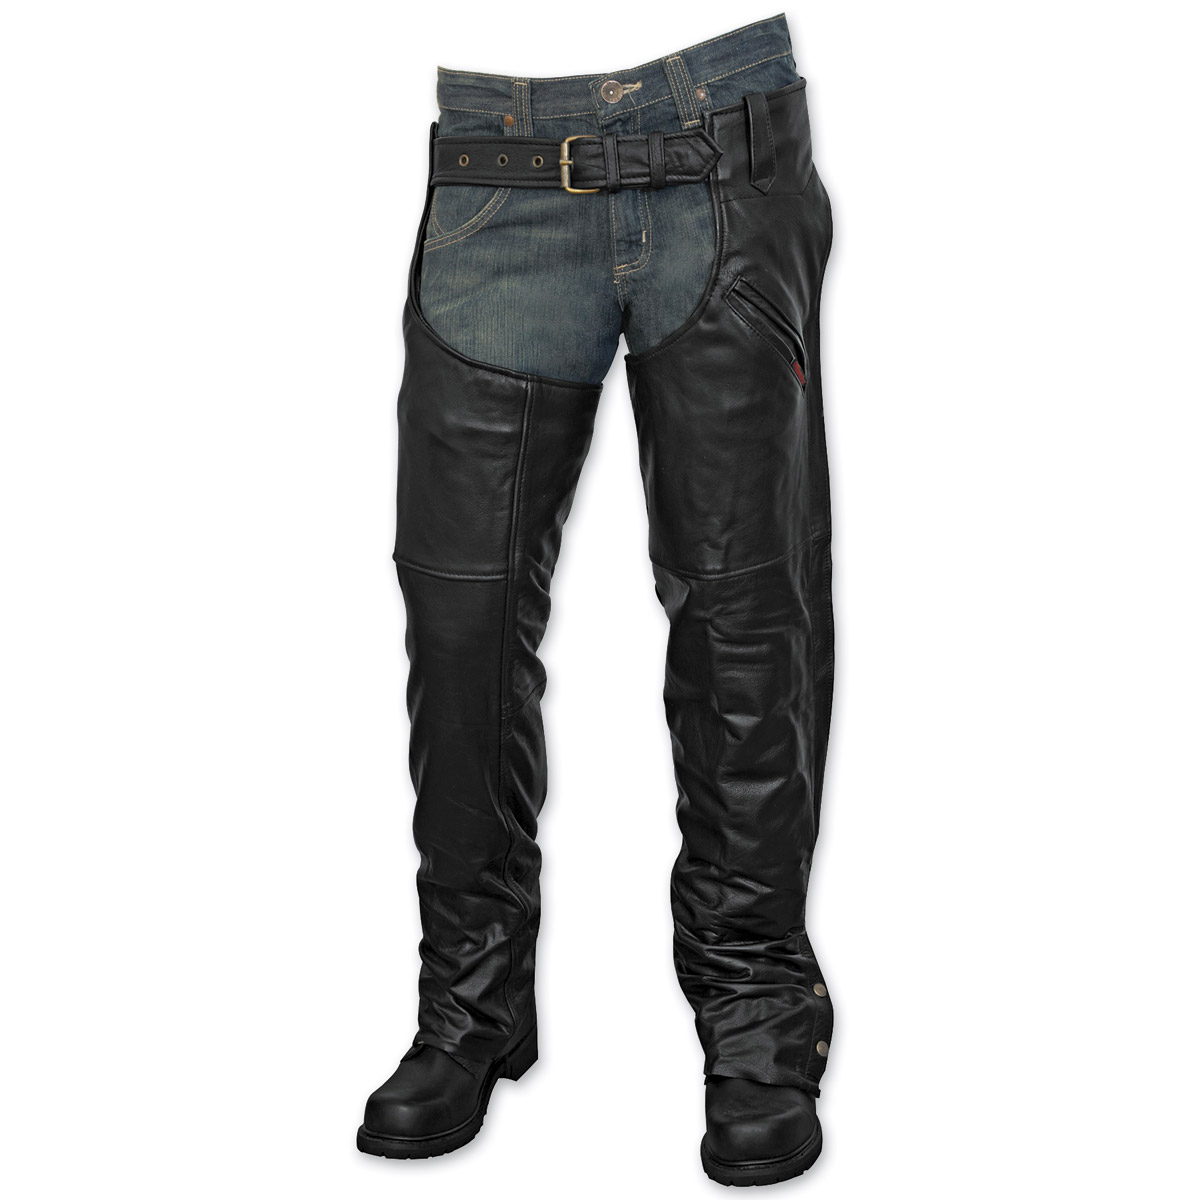 Milwaukee Motorcycle Clothing Co. Unisex Knight Black Leather Chaps